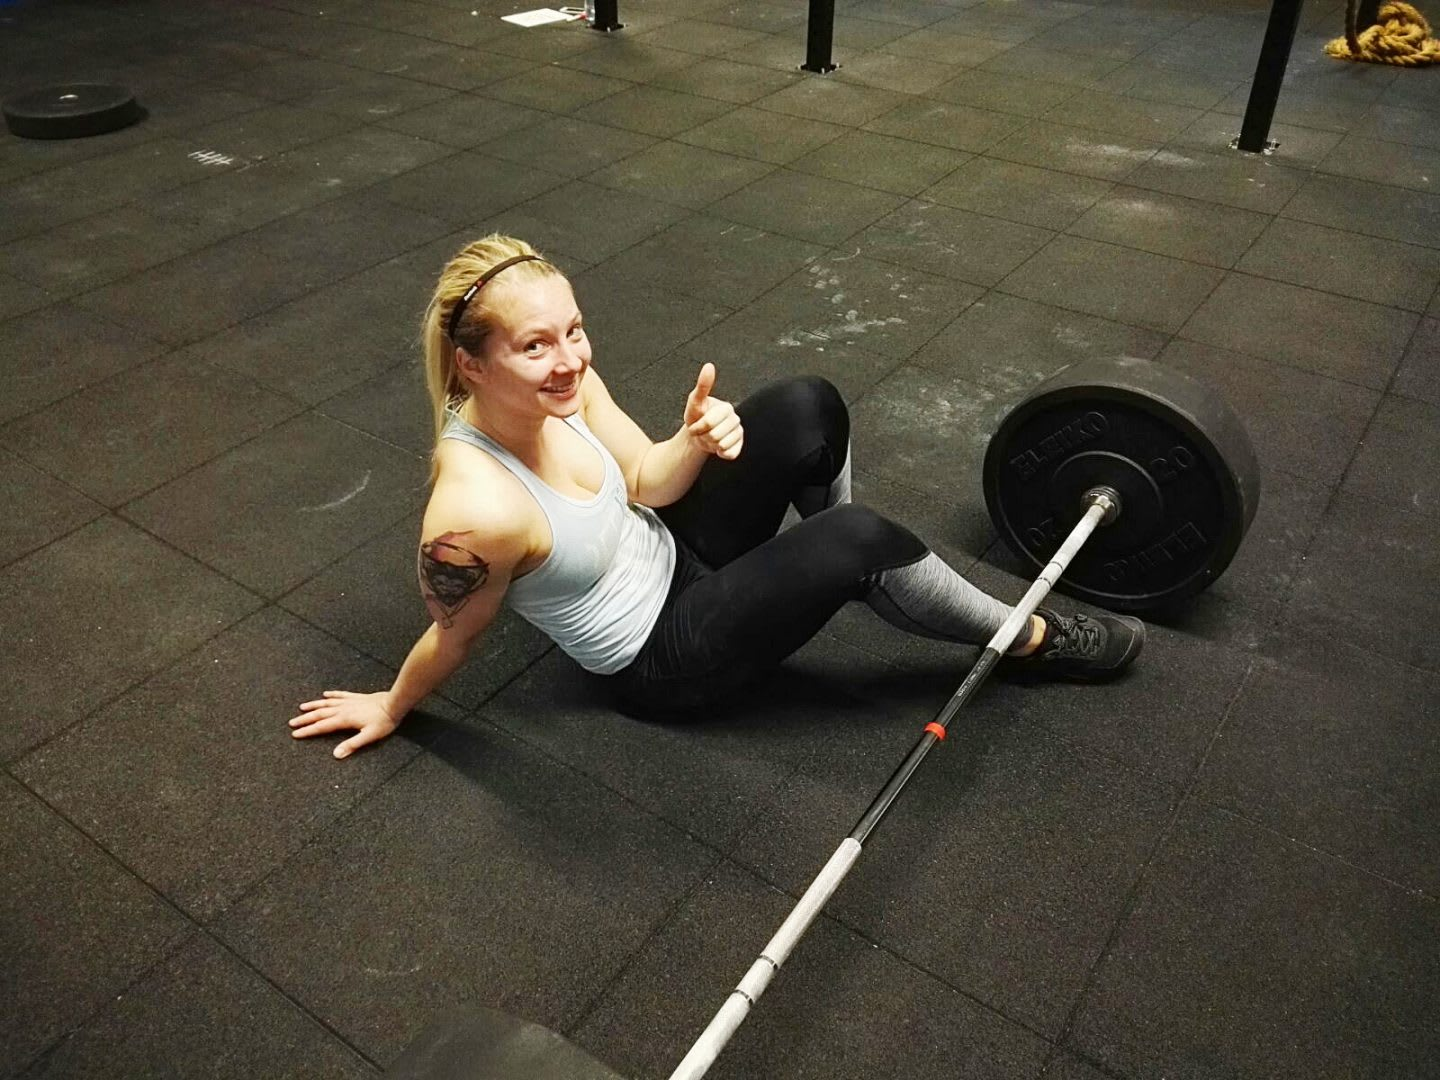 CrossFit girl sitting on the ground next to a barbell showing a thumbs up self-confidence letter to your haters training